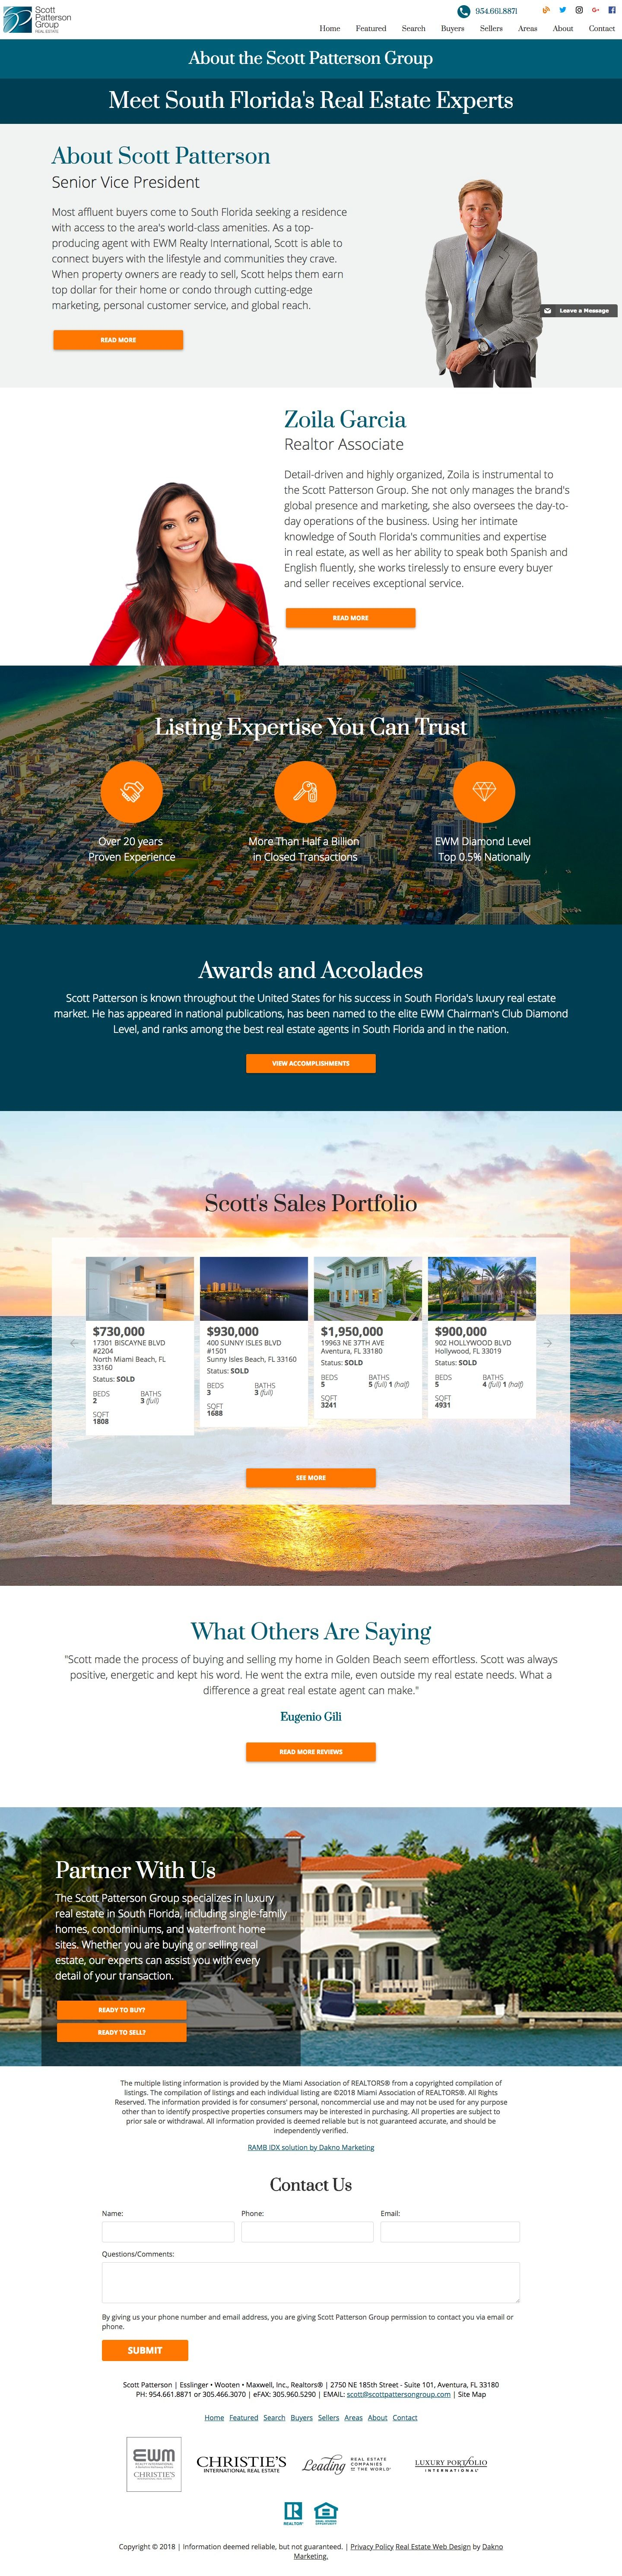 The Best Real Estate Website Staff Pages Designed By Dakno Marketing Tell Your Story To Help Connect South Florida Real Estate Florida Real Estate Real Estate